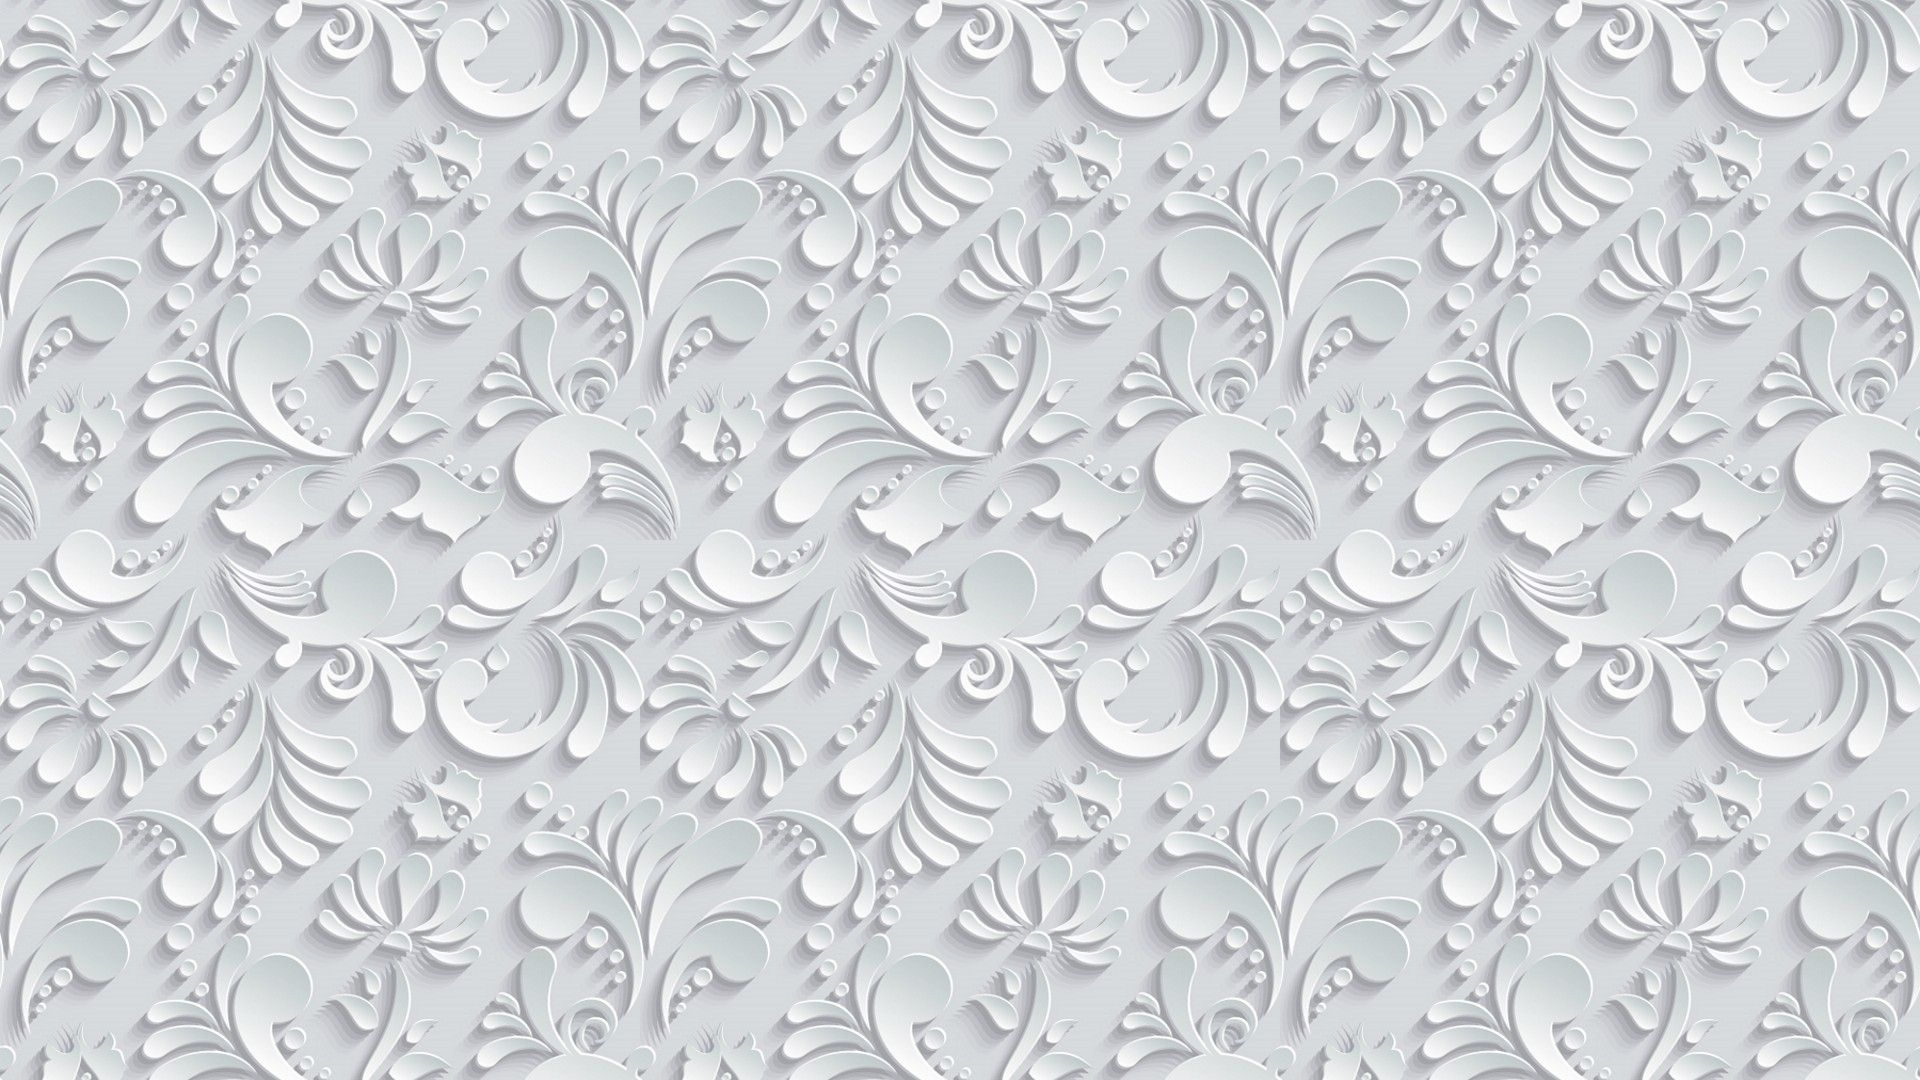 1920x1080 Vector Floral 3d Seamless Pattern on grey